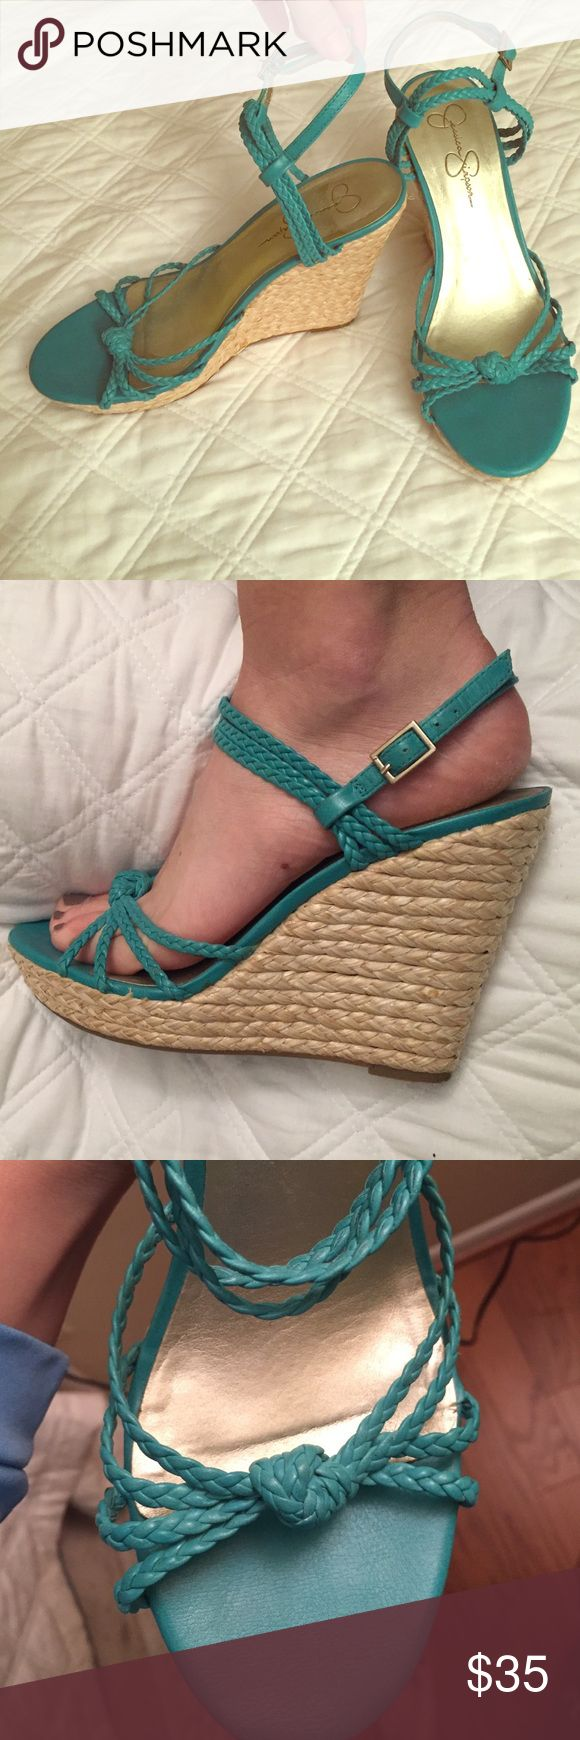 Beautiful Jessica Simpson turquoise wedges sz. 8 Great condition- hardly worn! Very pretty braided pattern. Beautiful turquoise color! Adjustable ankle strap. Size 8 Jessica Simpson Shoes Wedges